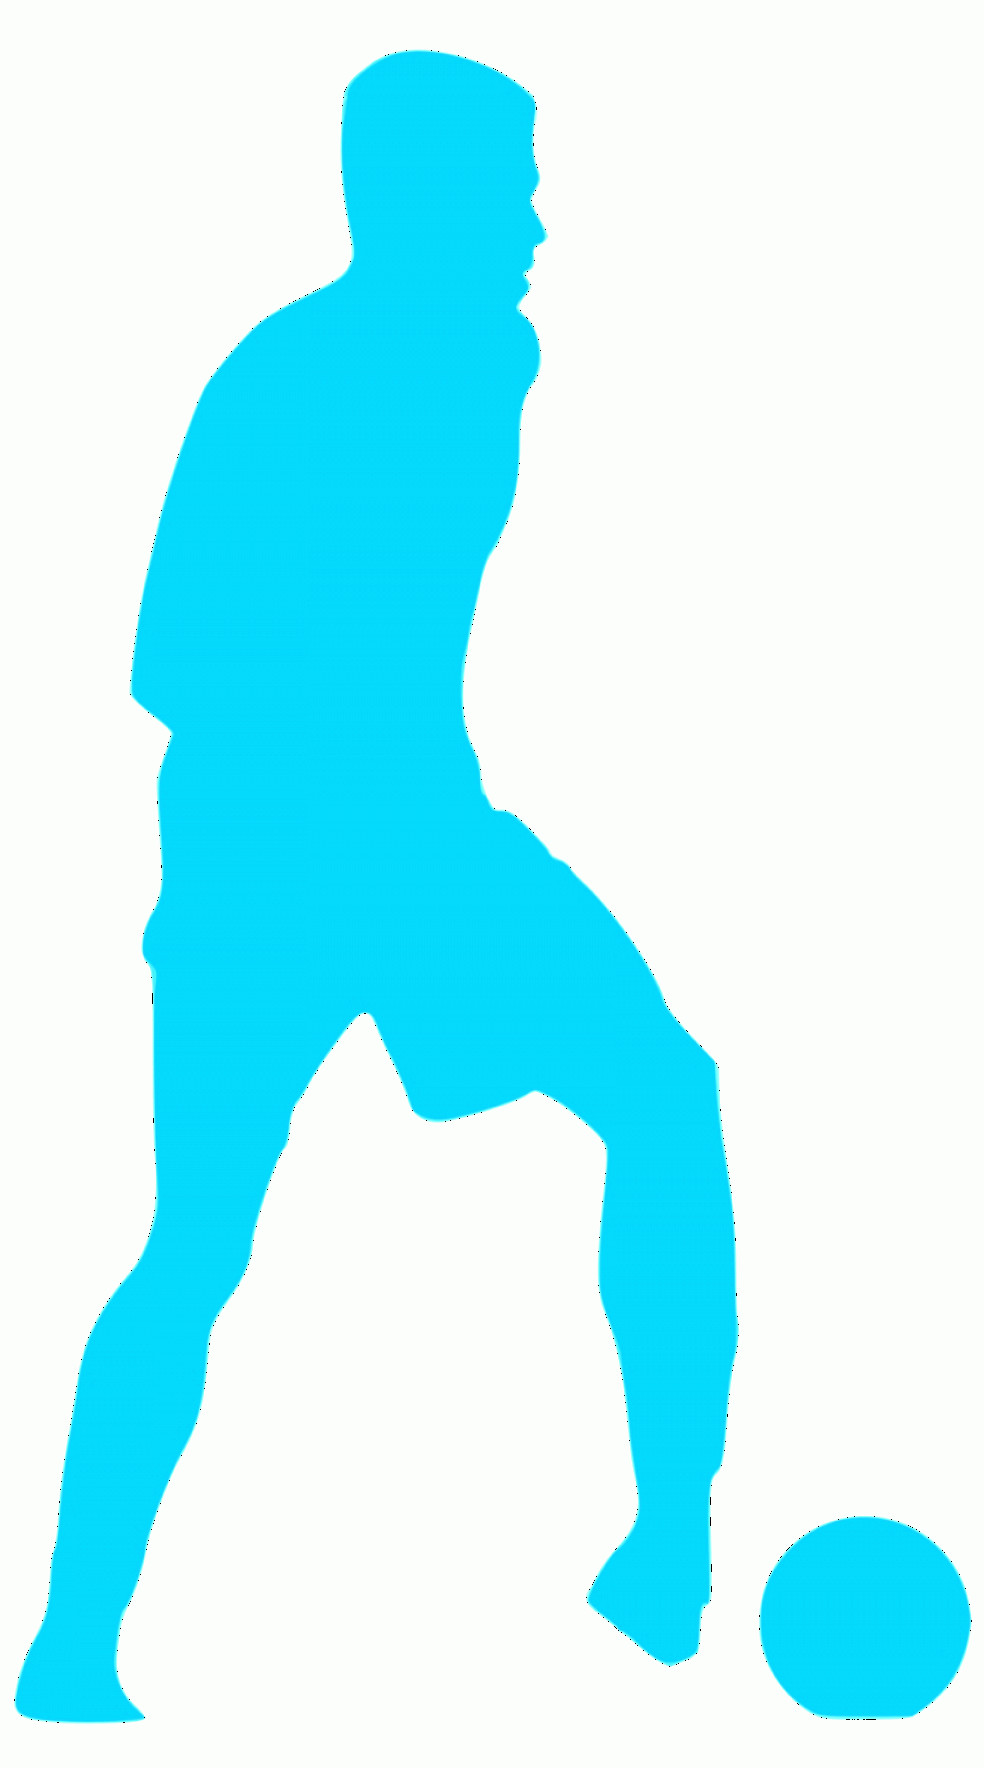 Football Laces Vector Silhouette: Uwqaoqyosilhouette Football Icons Png Football Player In